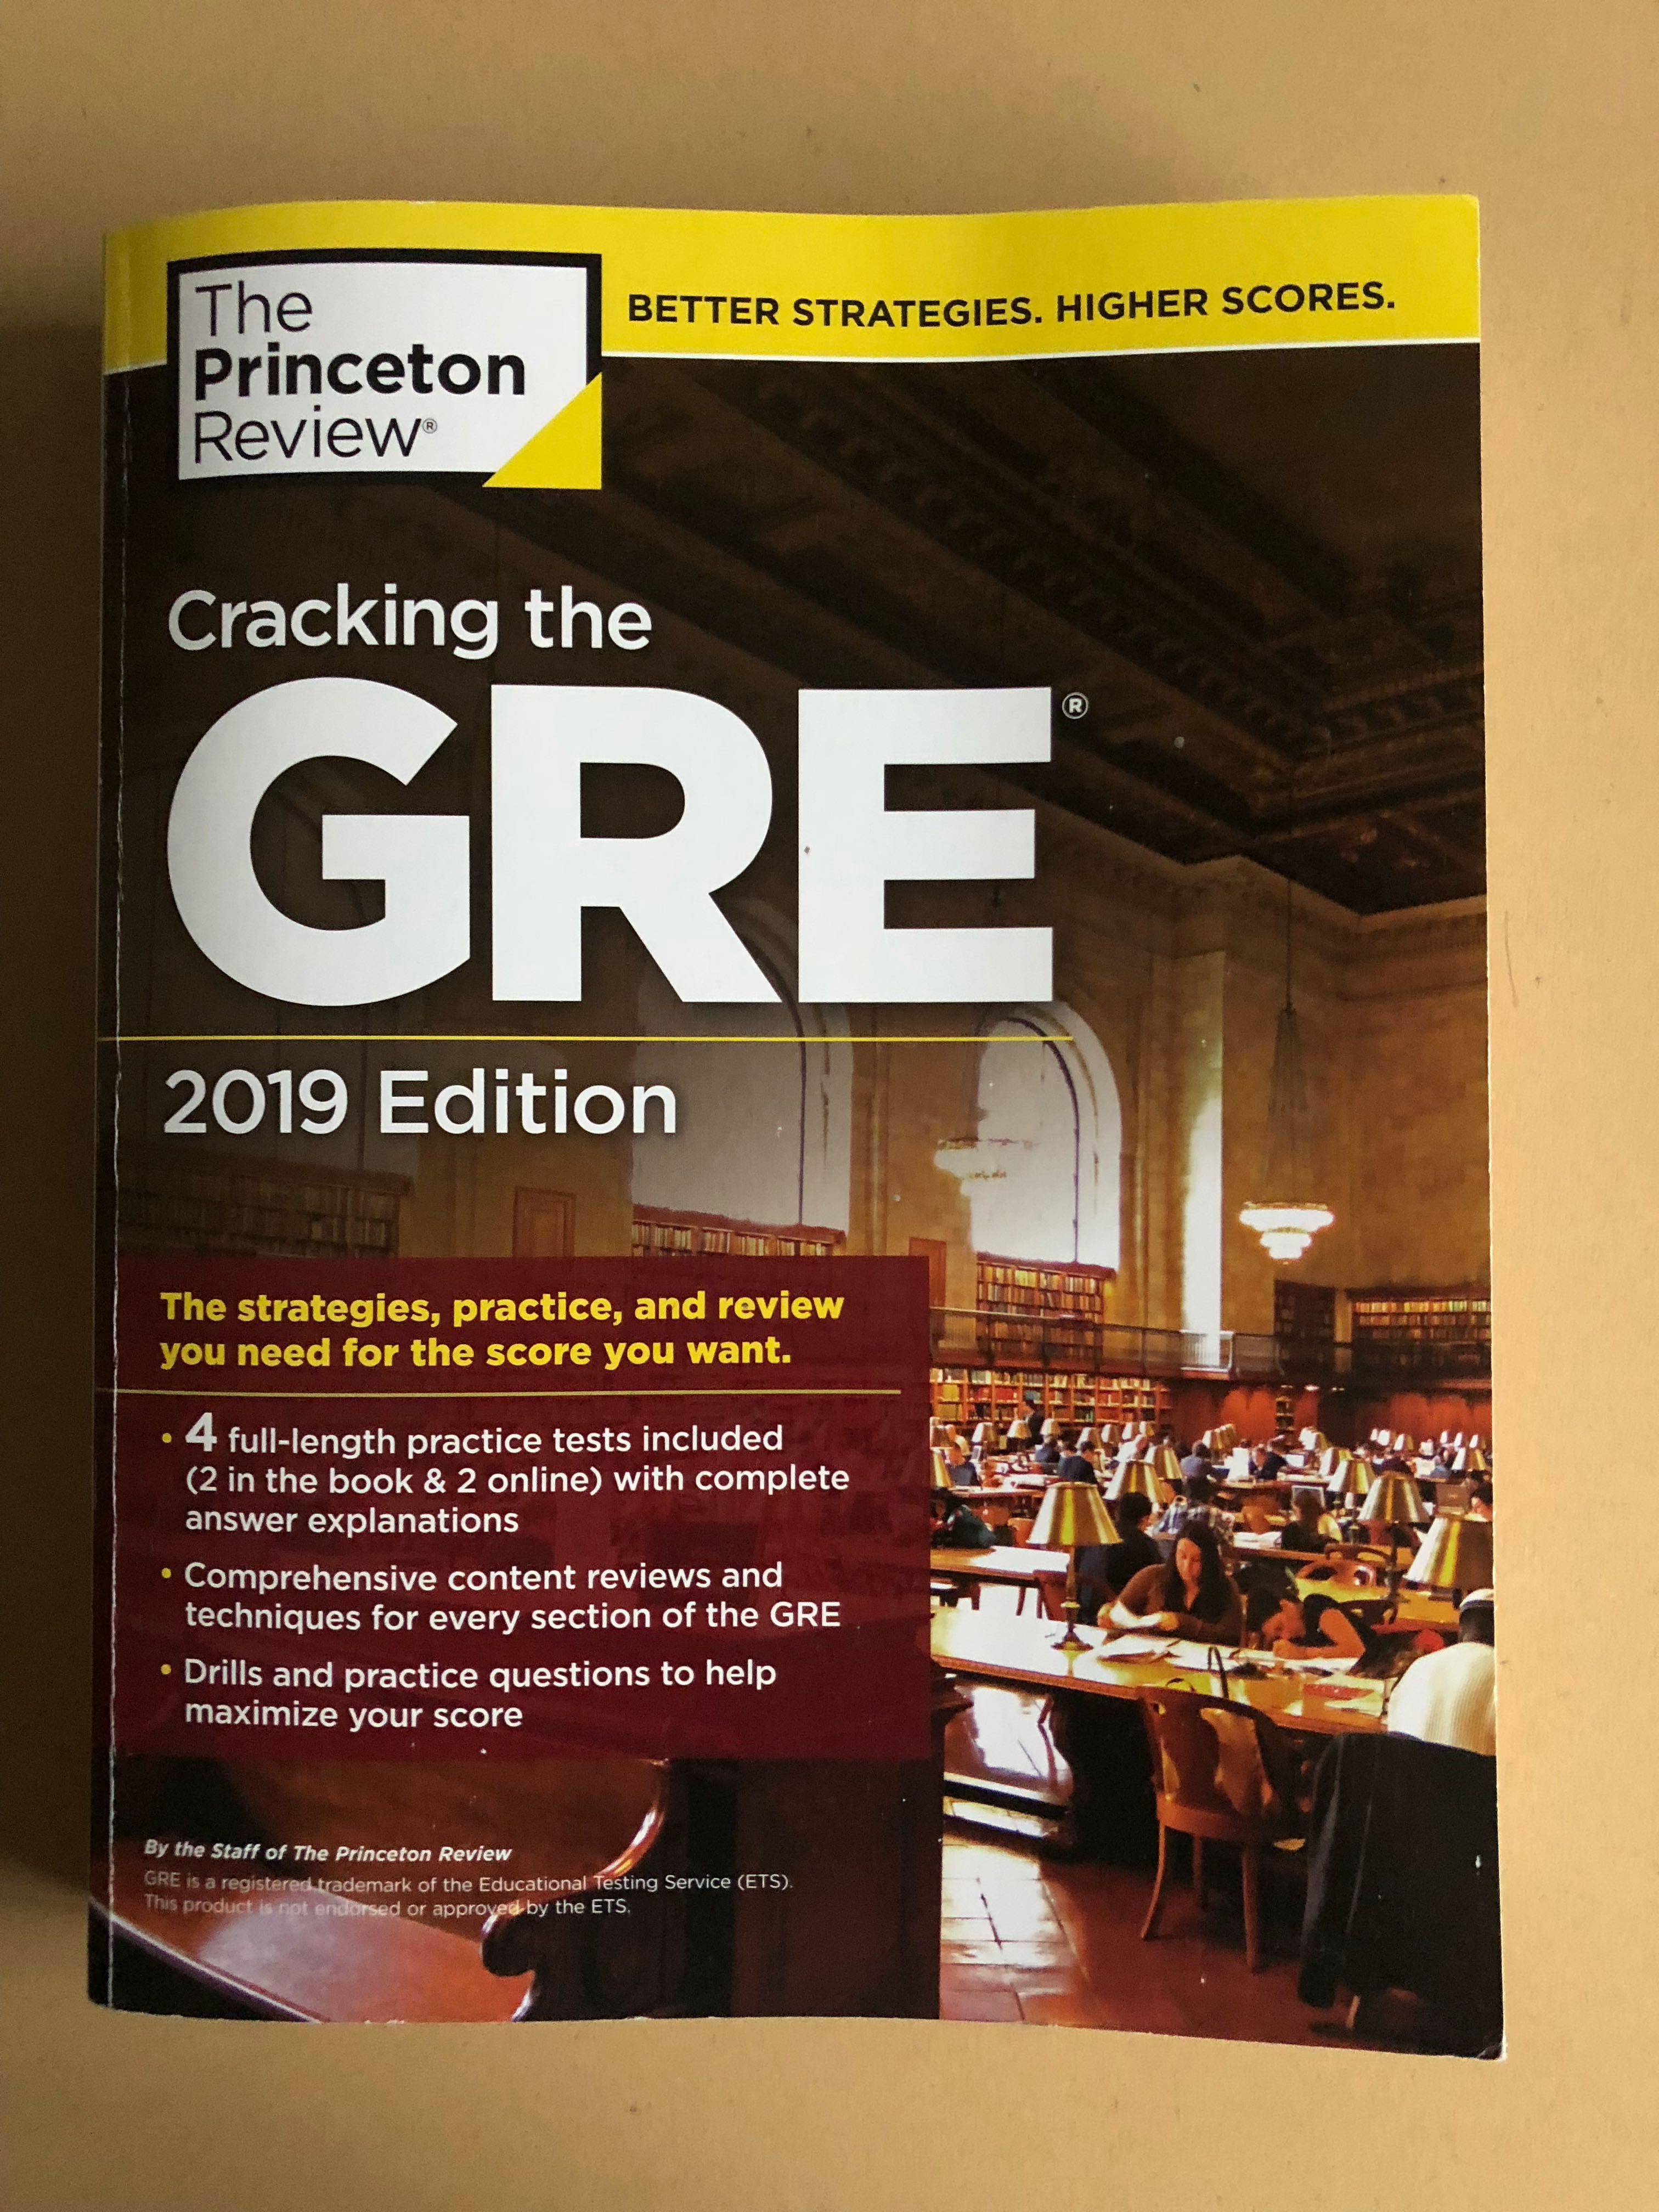 Gre Study Book >> 2019 Princeton Gre Study Guide 4 Books Stationery Textbooks